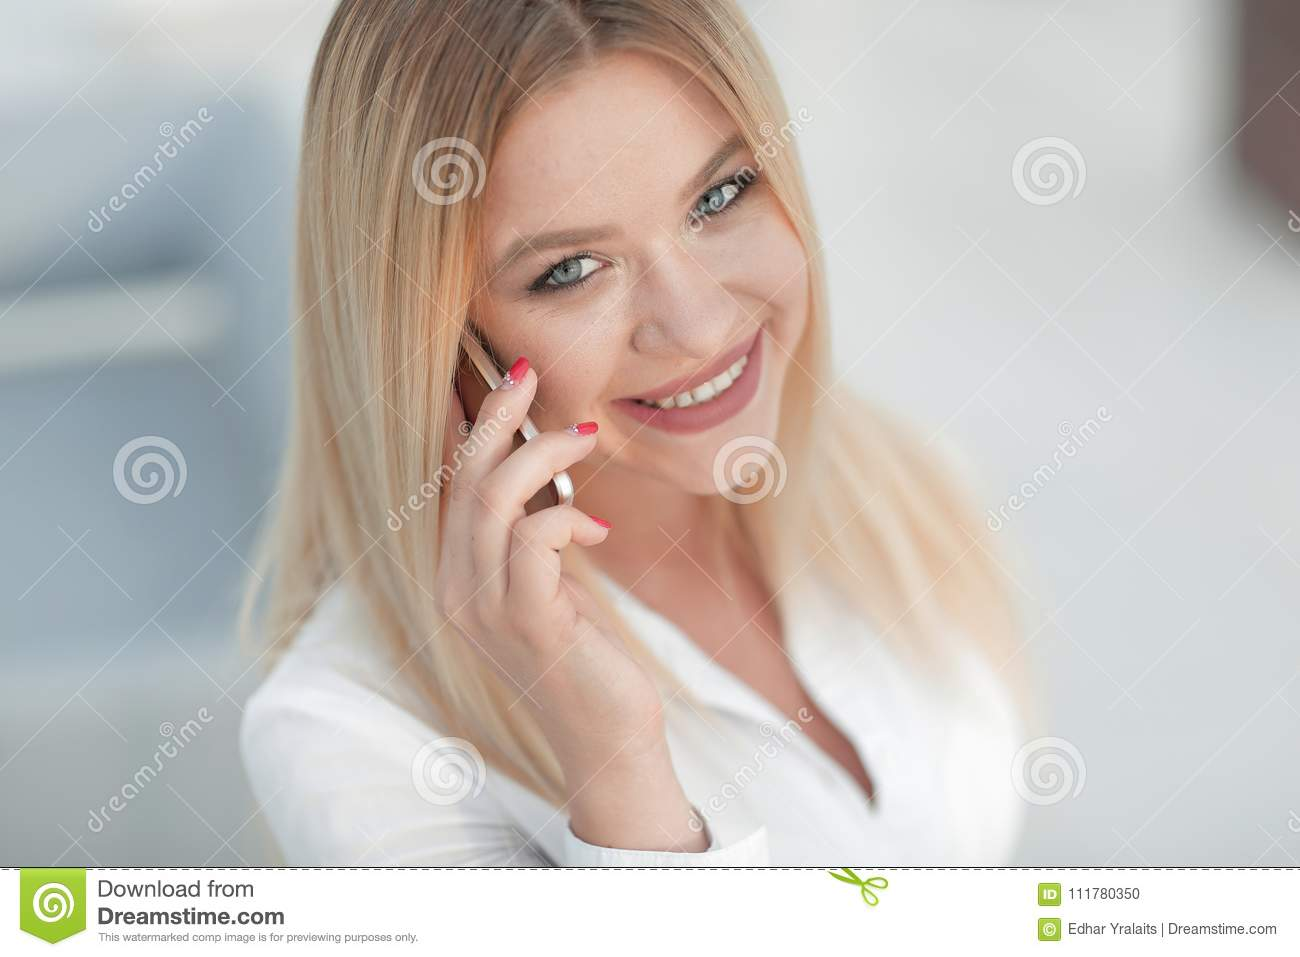 Closeup of young woman talking on a mobile phone.